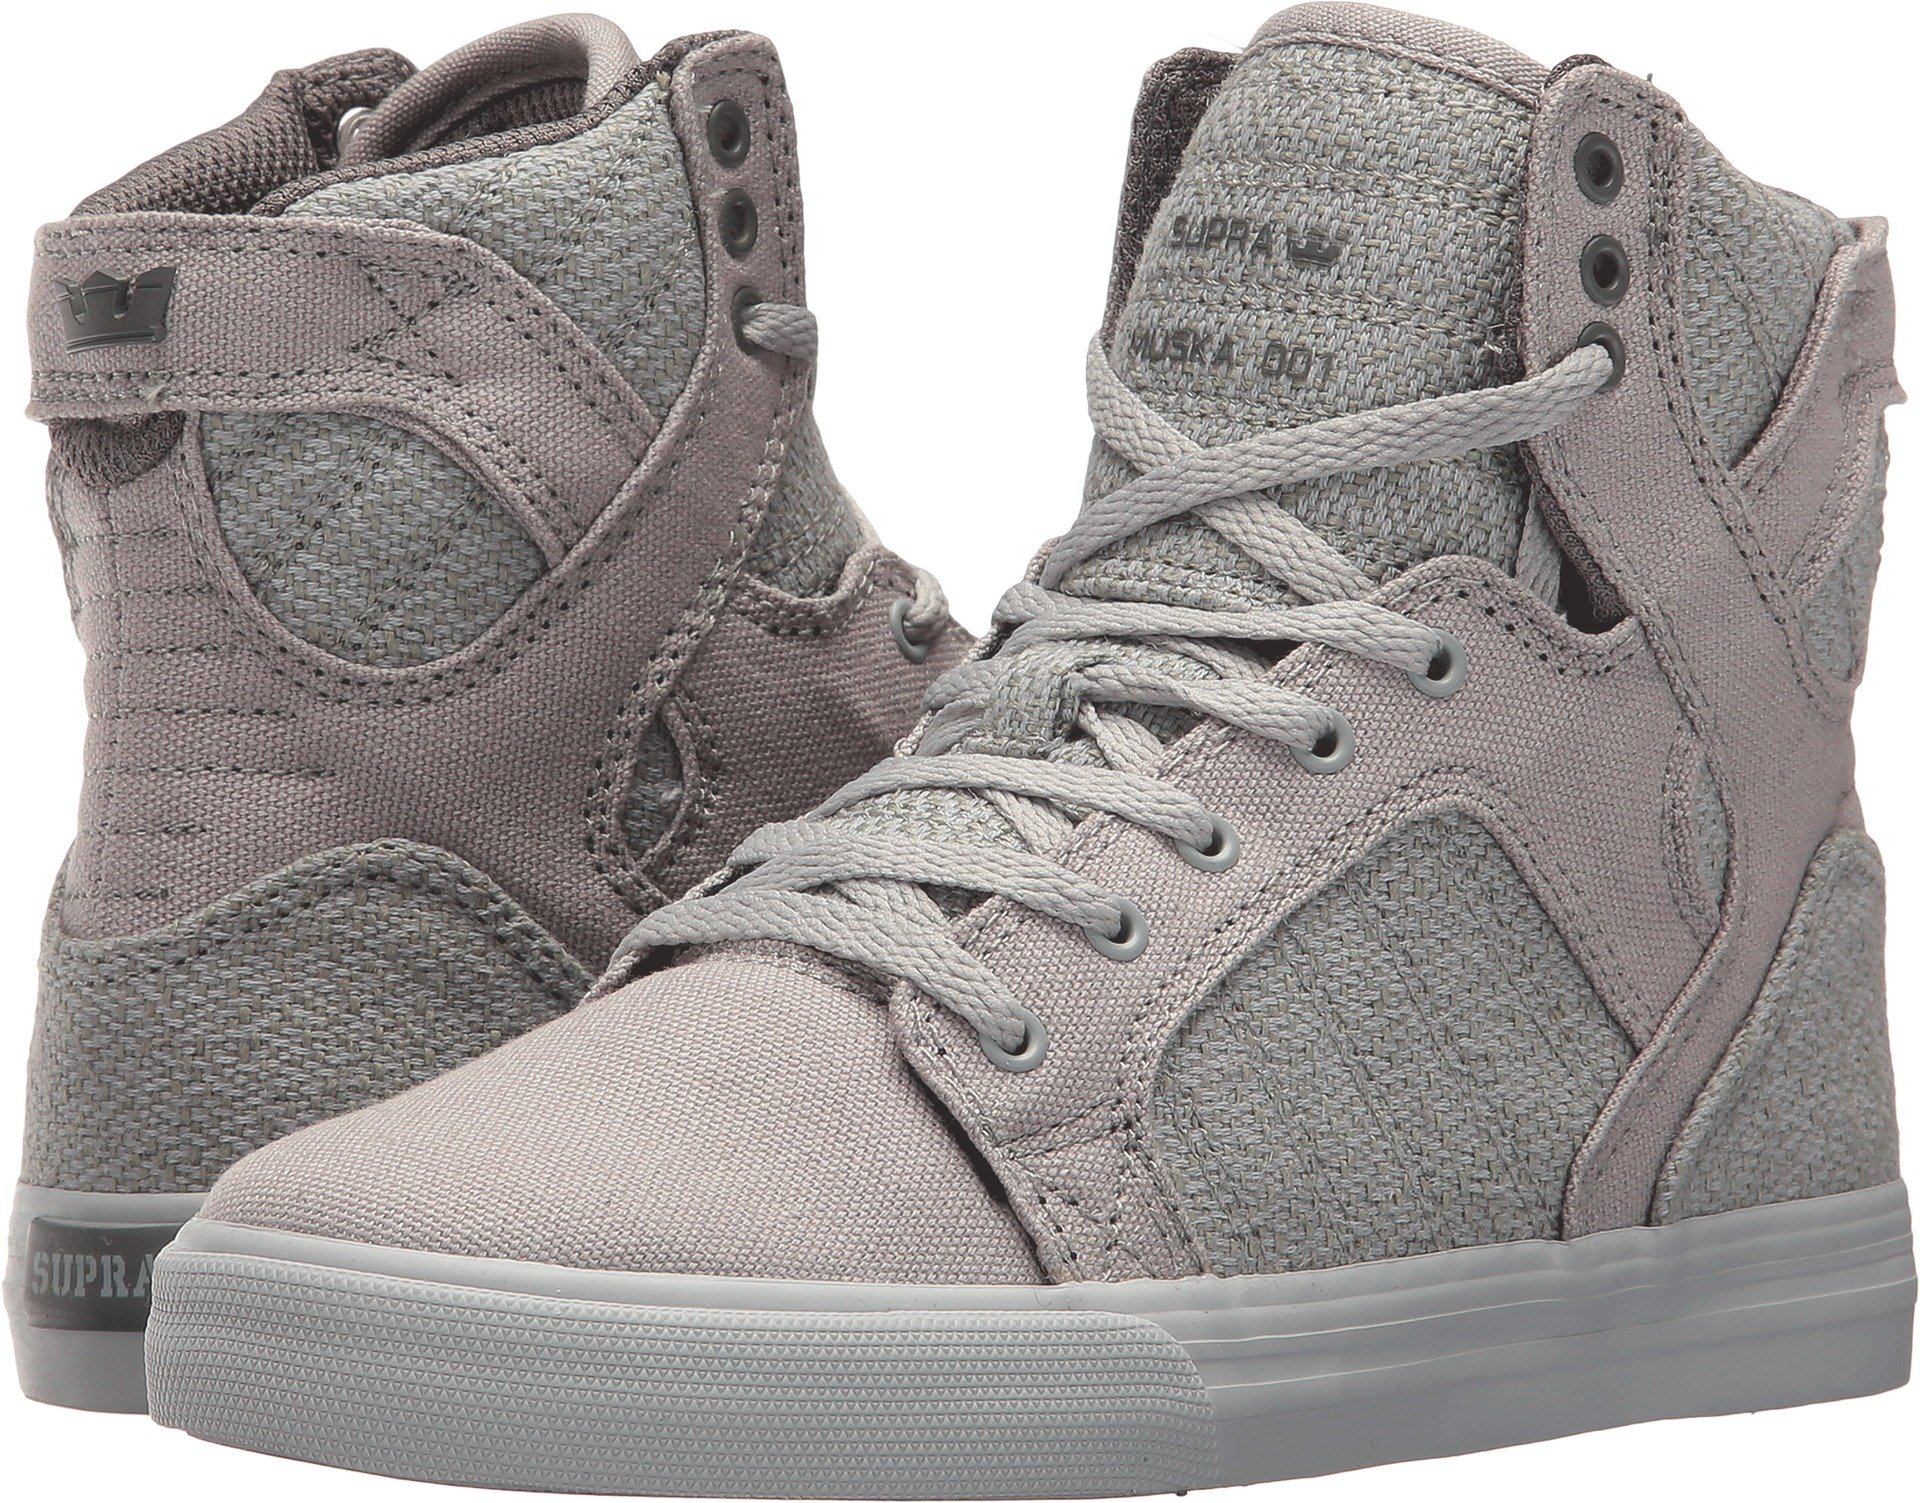 Supra Kids Boy's Skytop (Little Kid/Big Kid) Light Grey/Charcoal/Light Grey 5 M US Big Kid